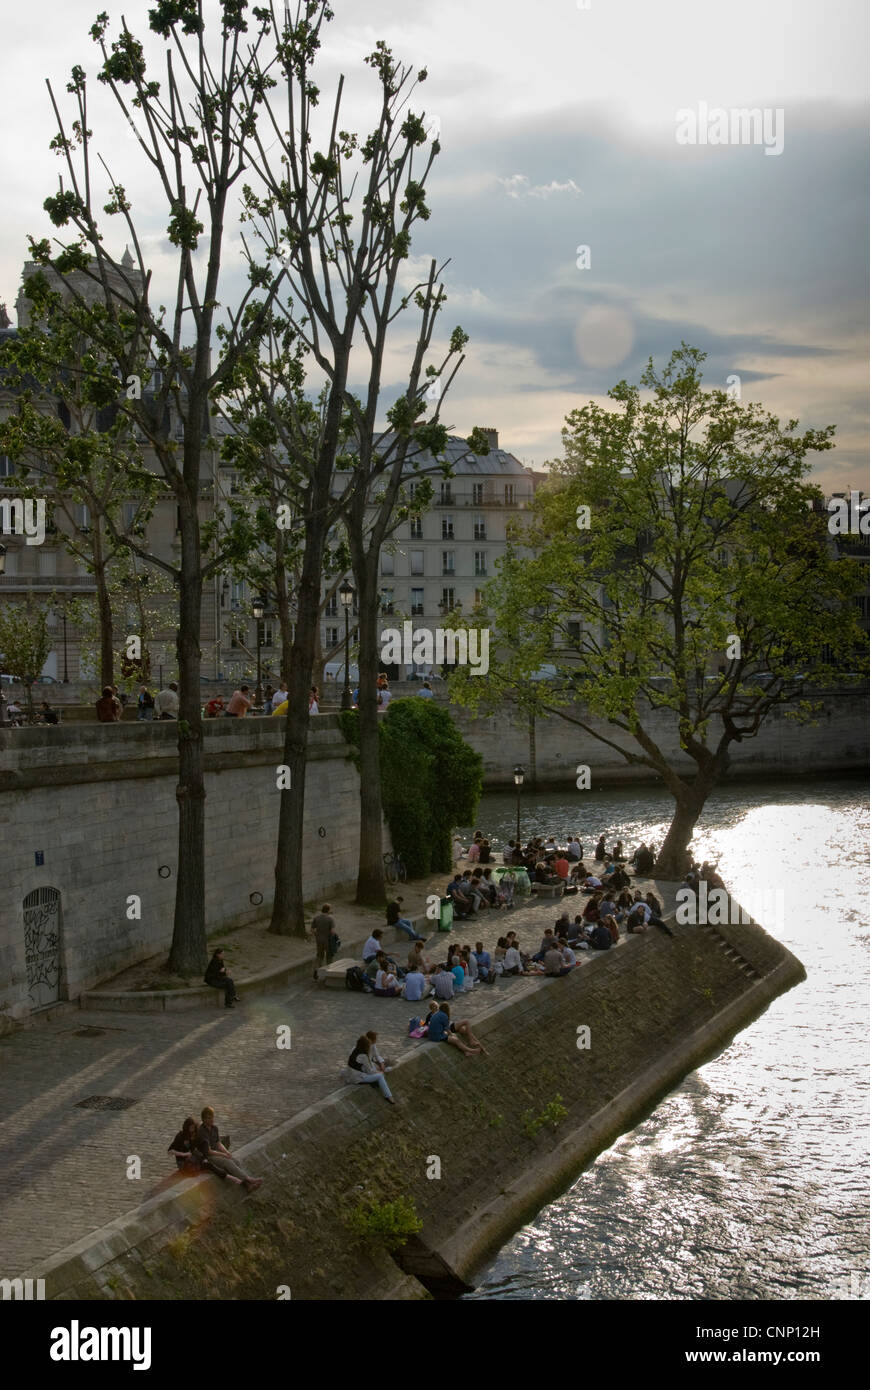 Parisians relaxing on the banks of the Seine, Paris. - Stock Image